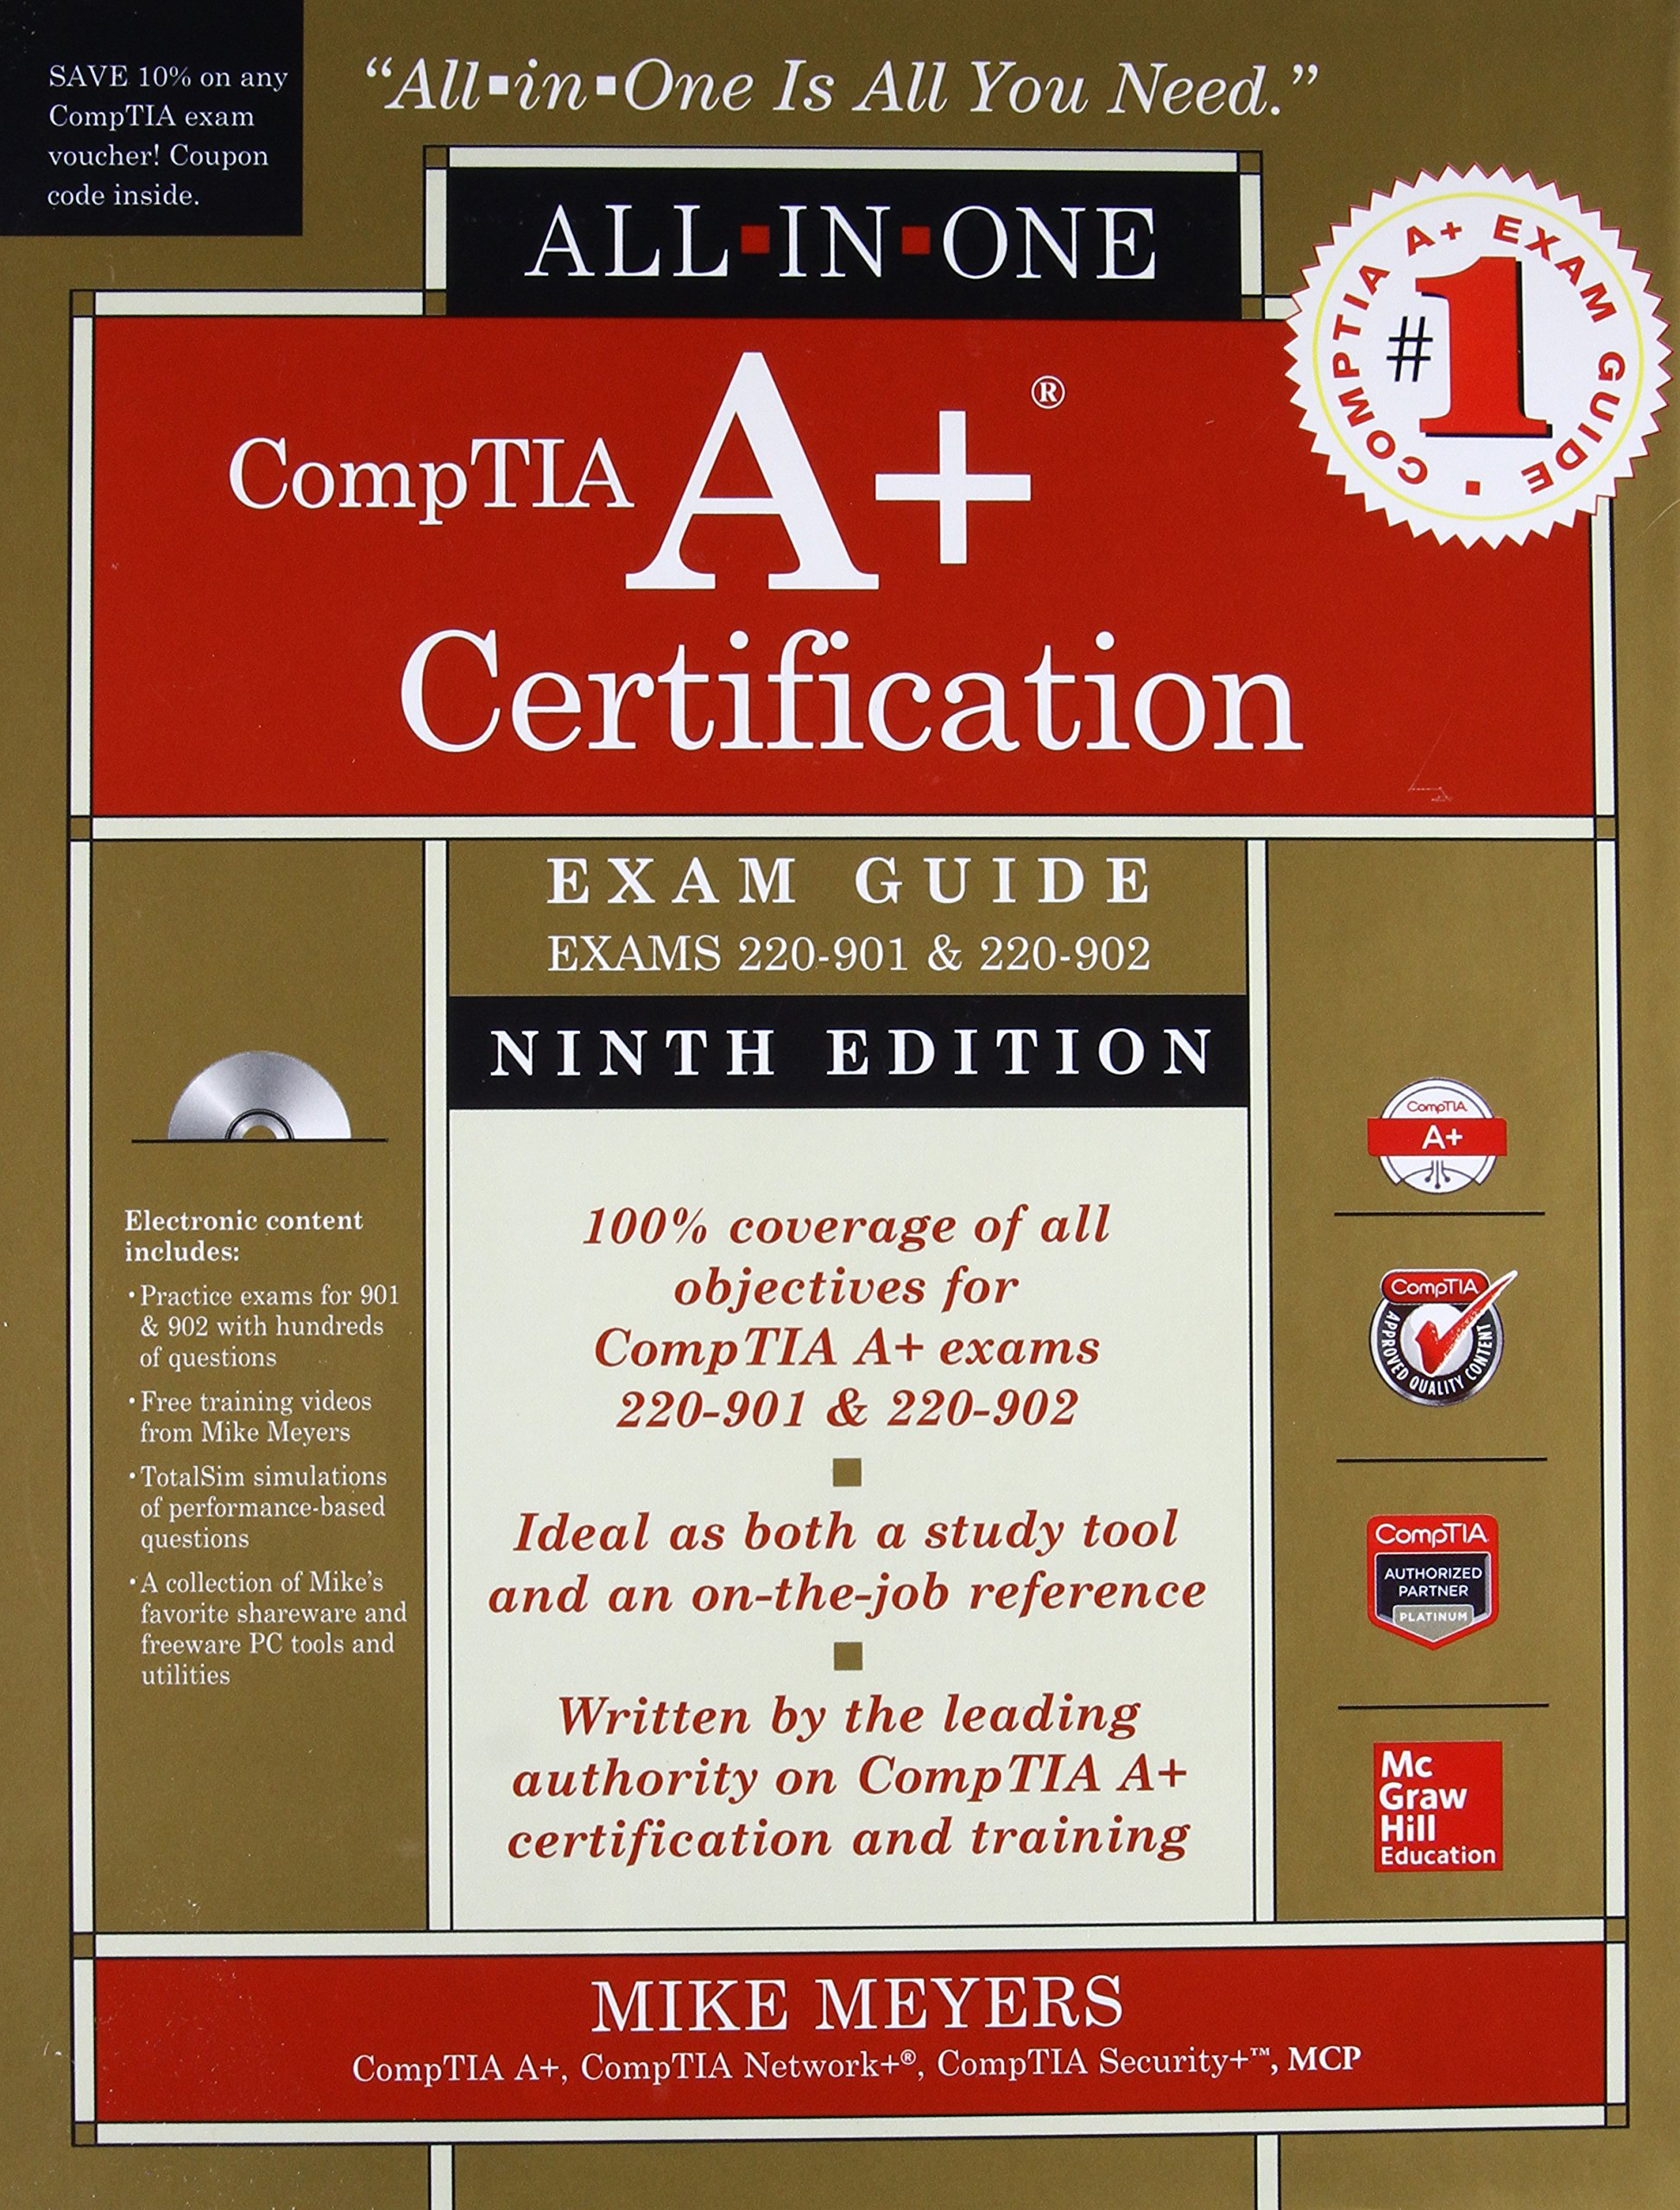 CompTIA A+ Certification All-in-One Exam Guide, Ninth Edition (Exams 220-901 & 220-902) by McGraw-Hill Osborne Media